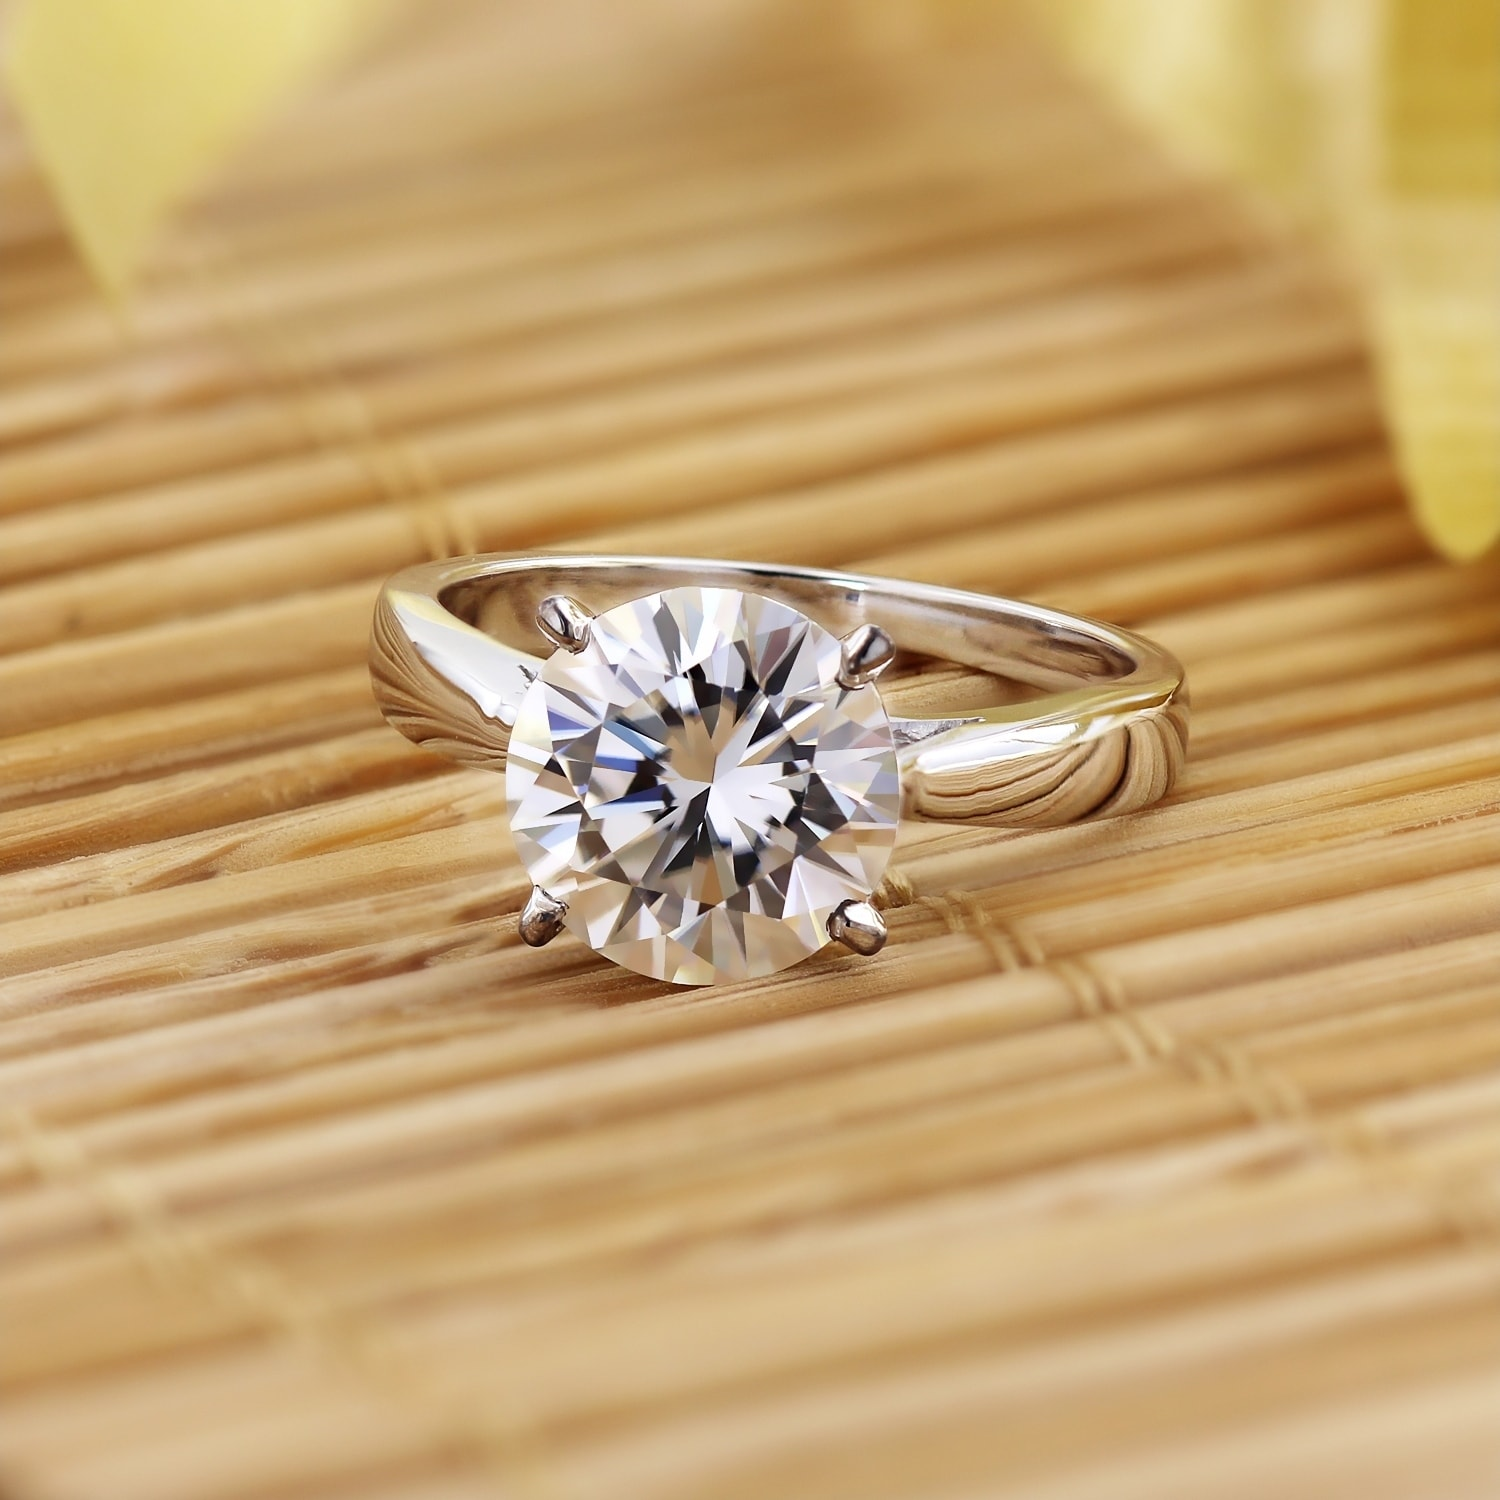 2.00 CT ROUND CUT BRILLIANT 14K WHITE GOLD MOISSANITE SOLITAIRE ENGAGEMENT RING